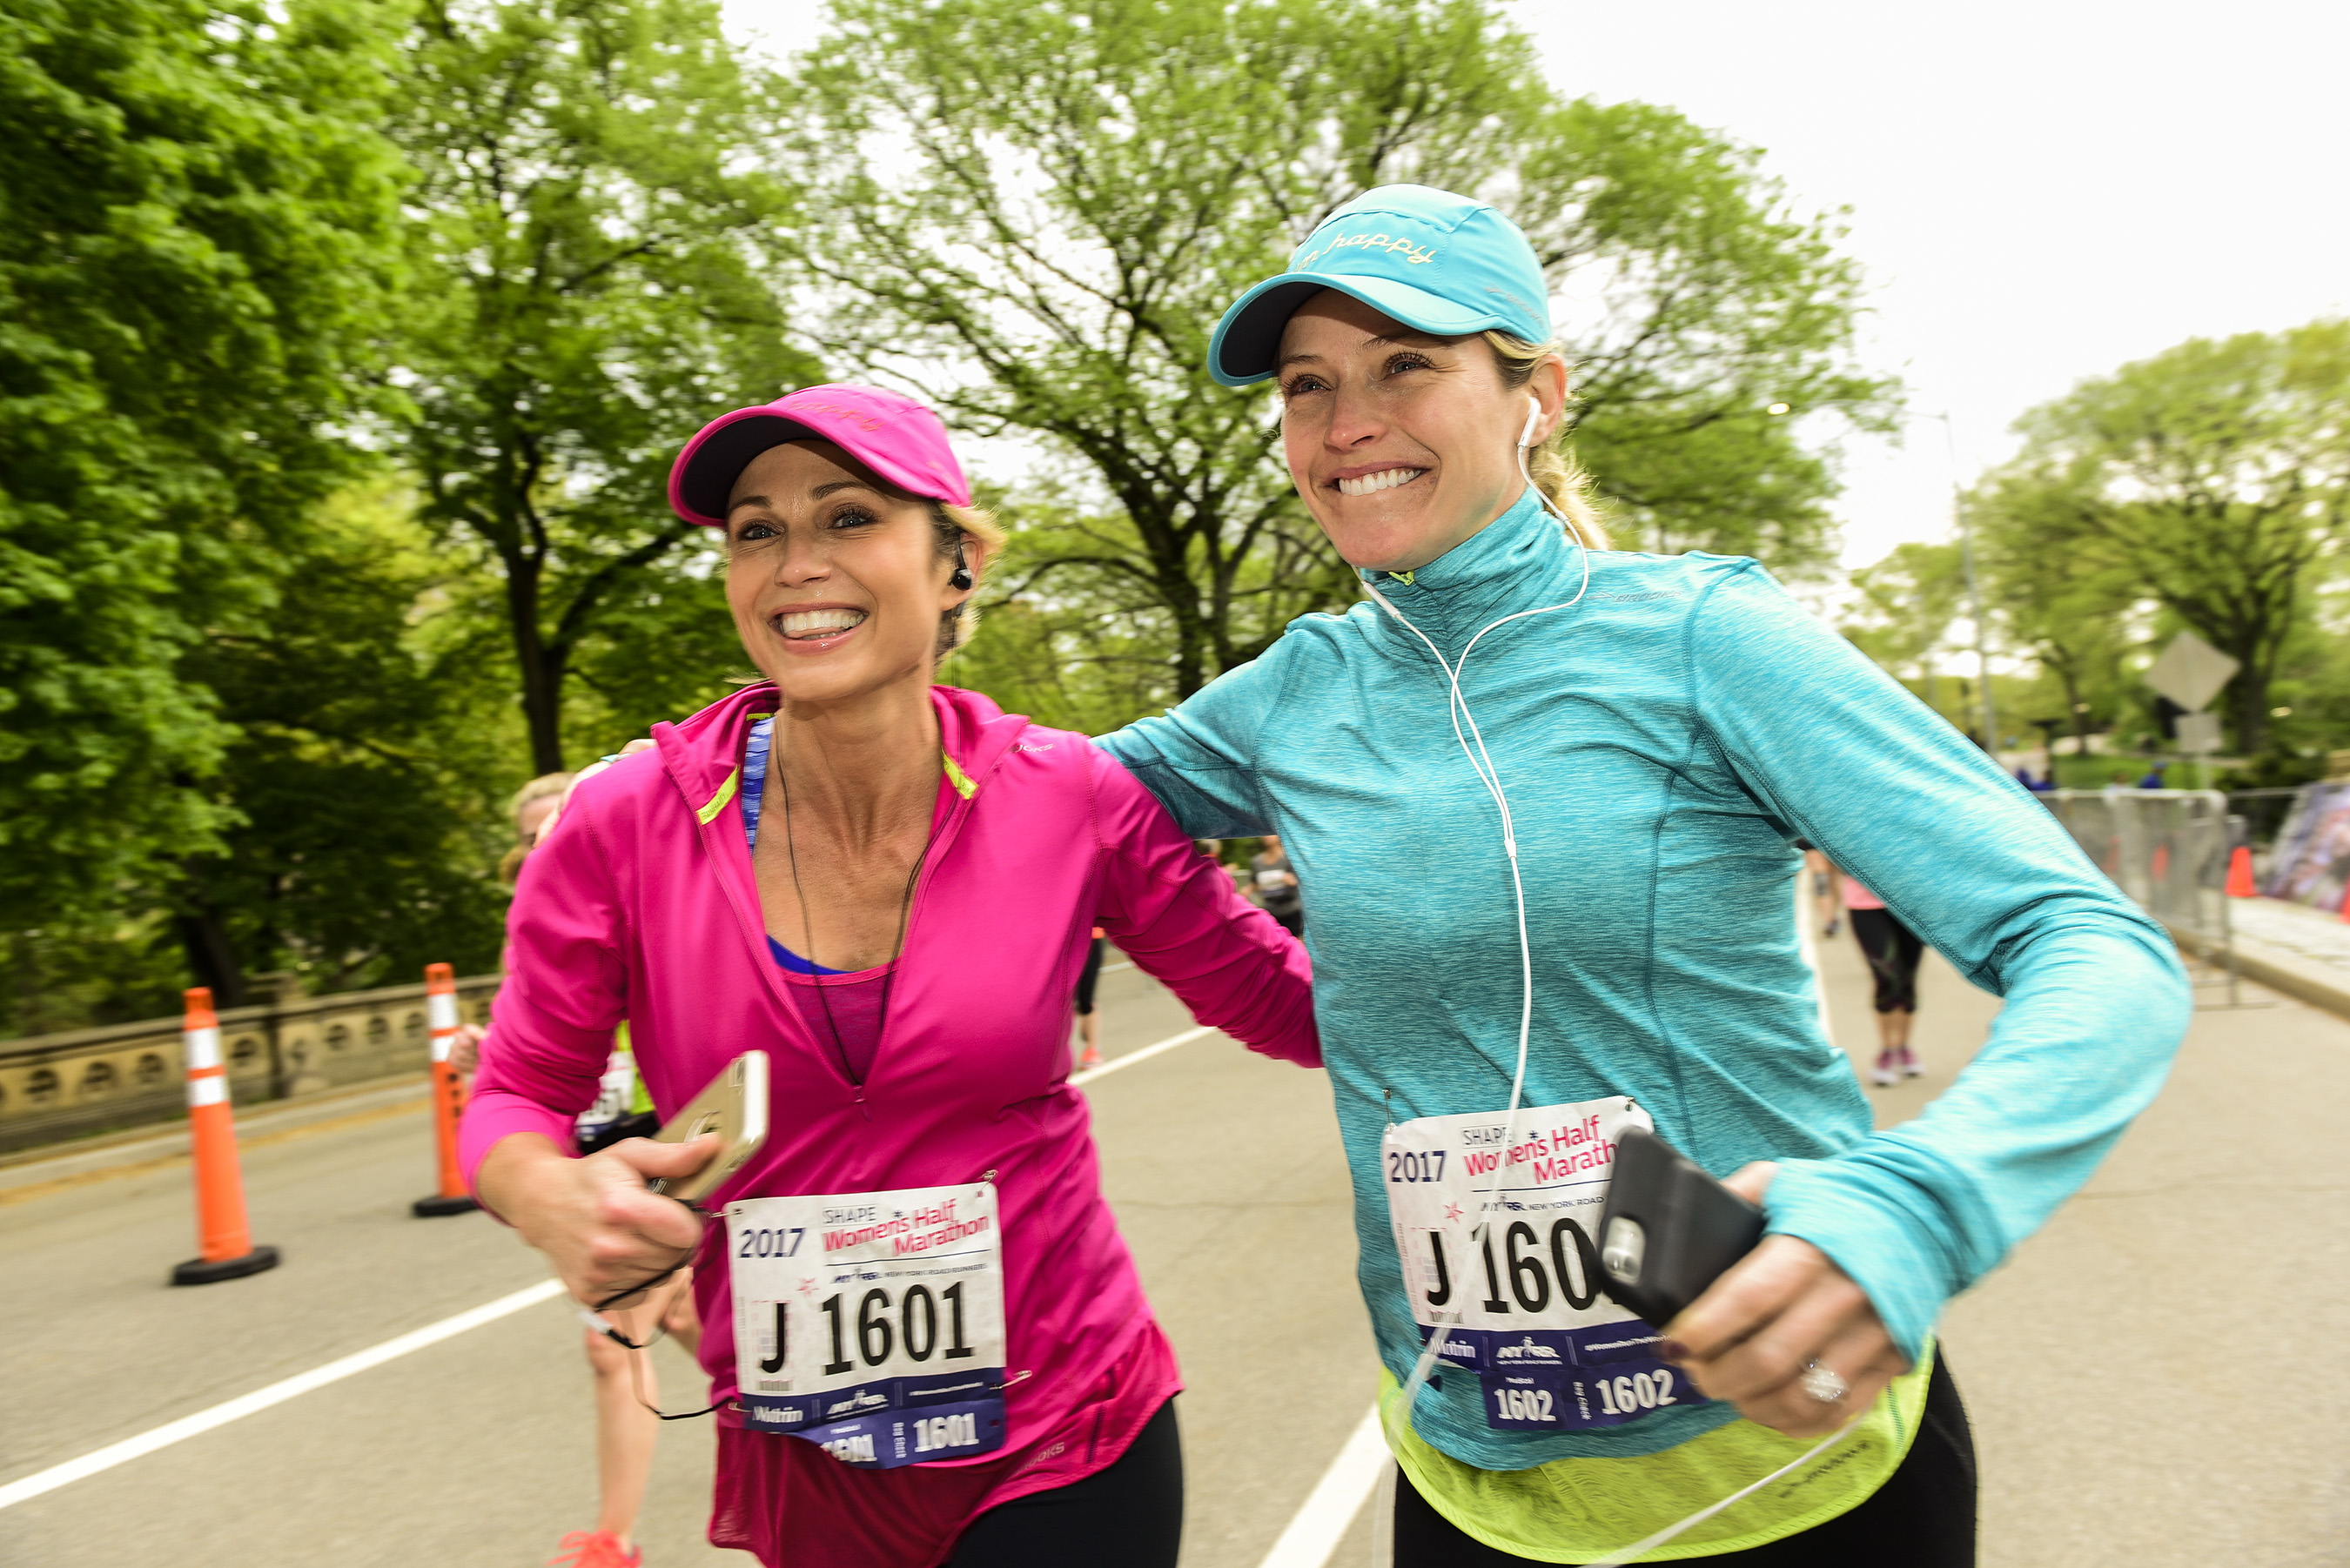 Amy Robach and Sara Haines run alongside each other at the 2017 SHAPE Women's Half Marathon in Central Park on Sunday, April 30, 2017